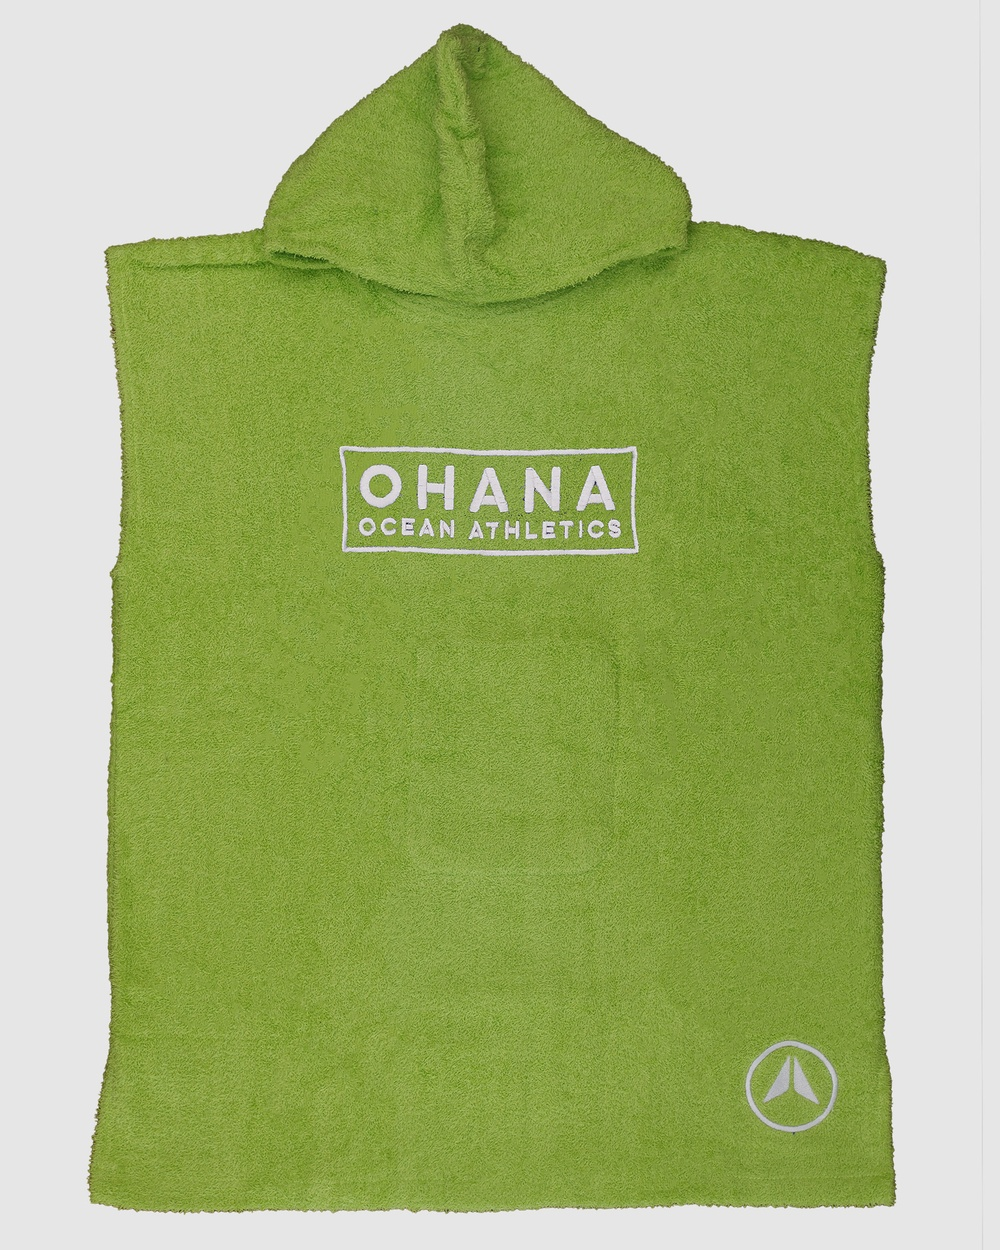 Ohana Junior Hooded Towel Tech Accessories Green Junior Hooded Towel